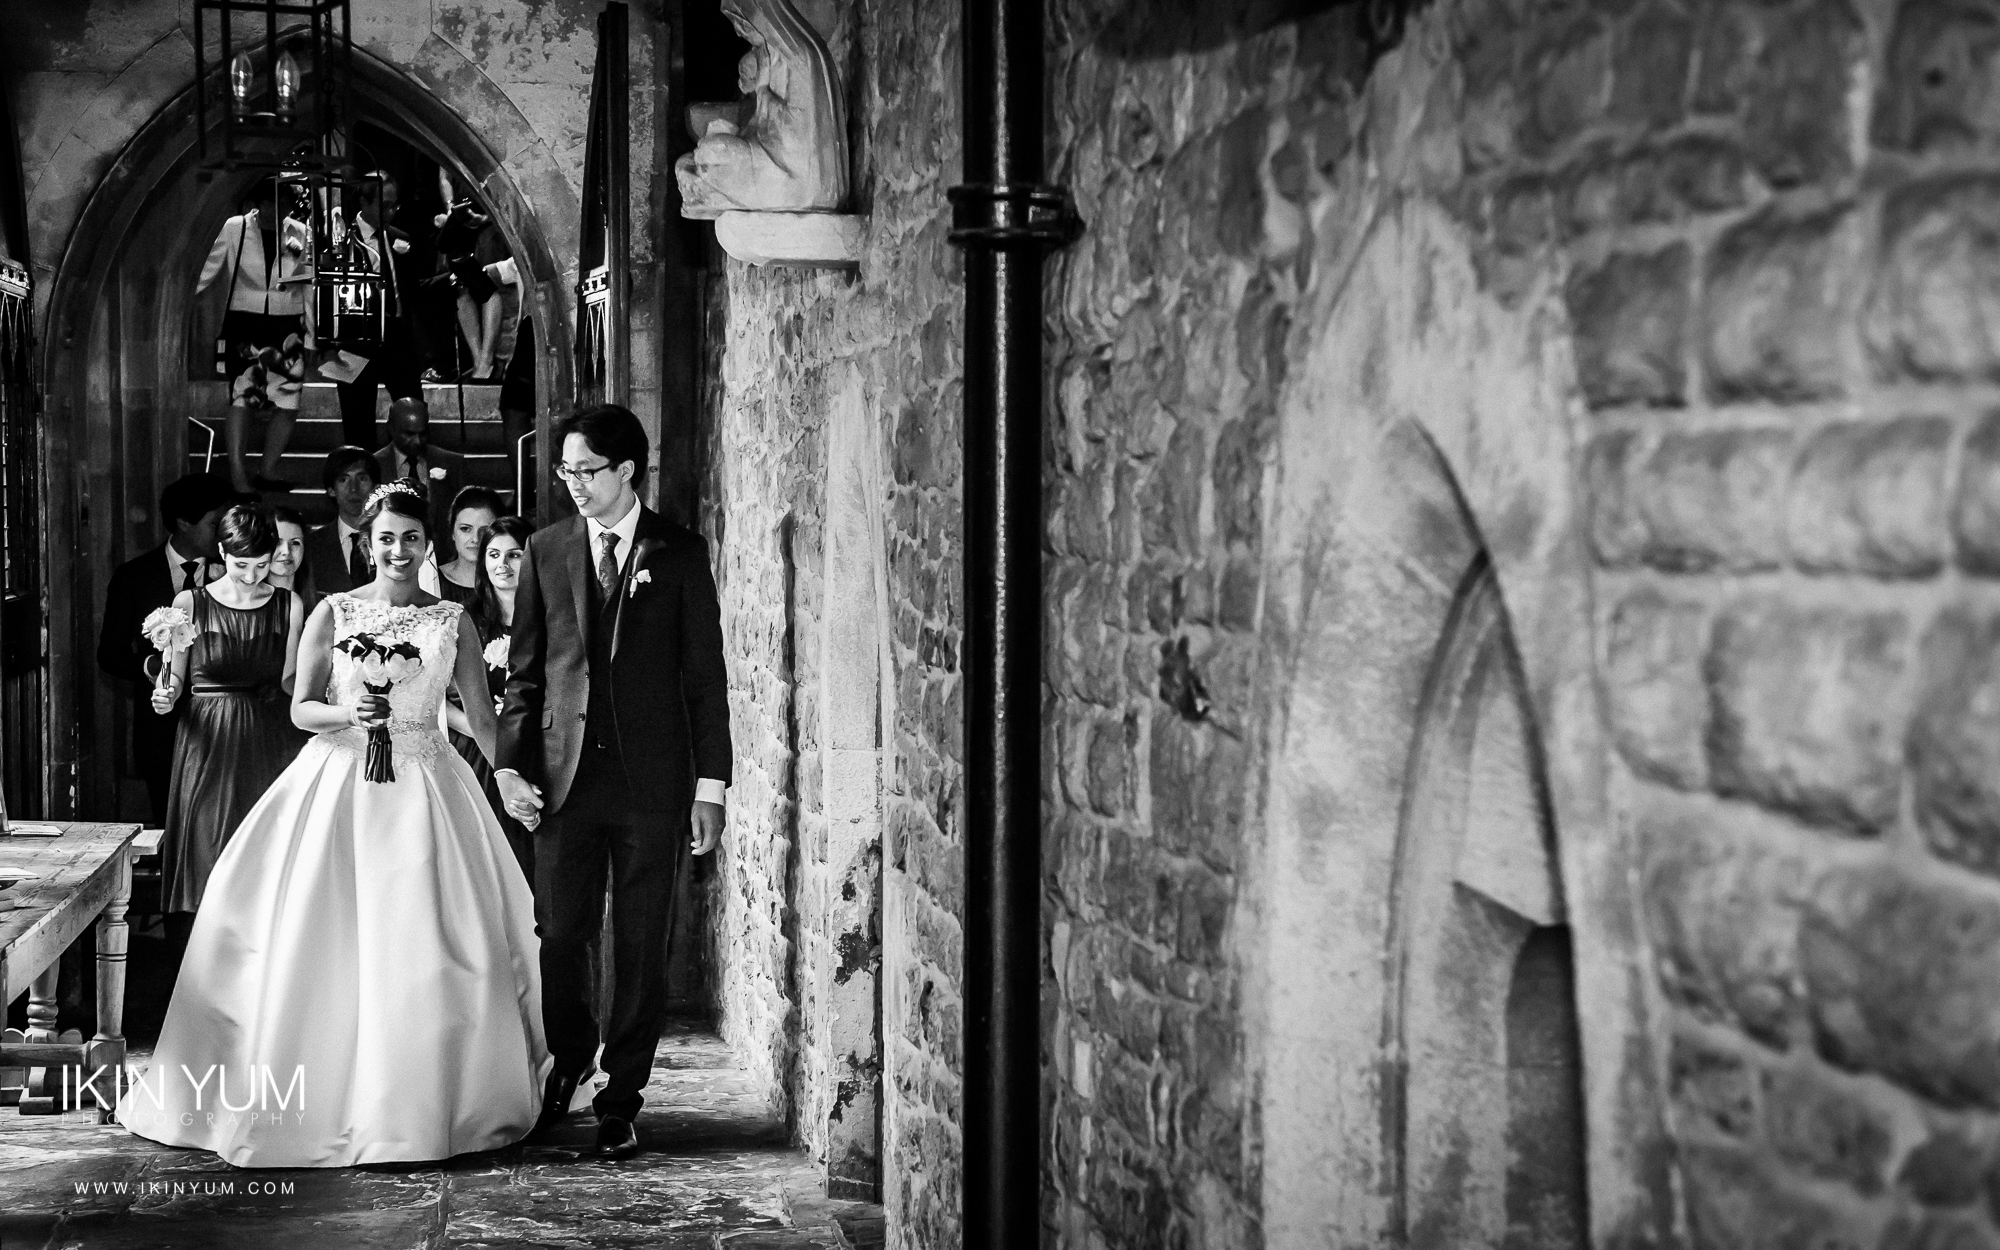 St Etheldreda Church Wedding - London Wedding Photographer -  英国伦敦 婚礼 摄影